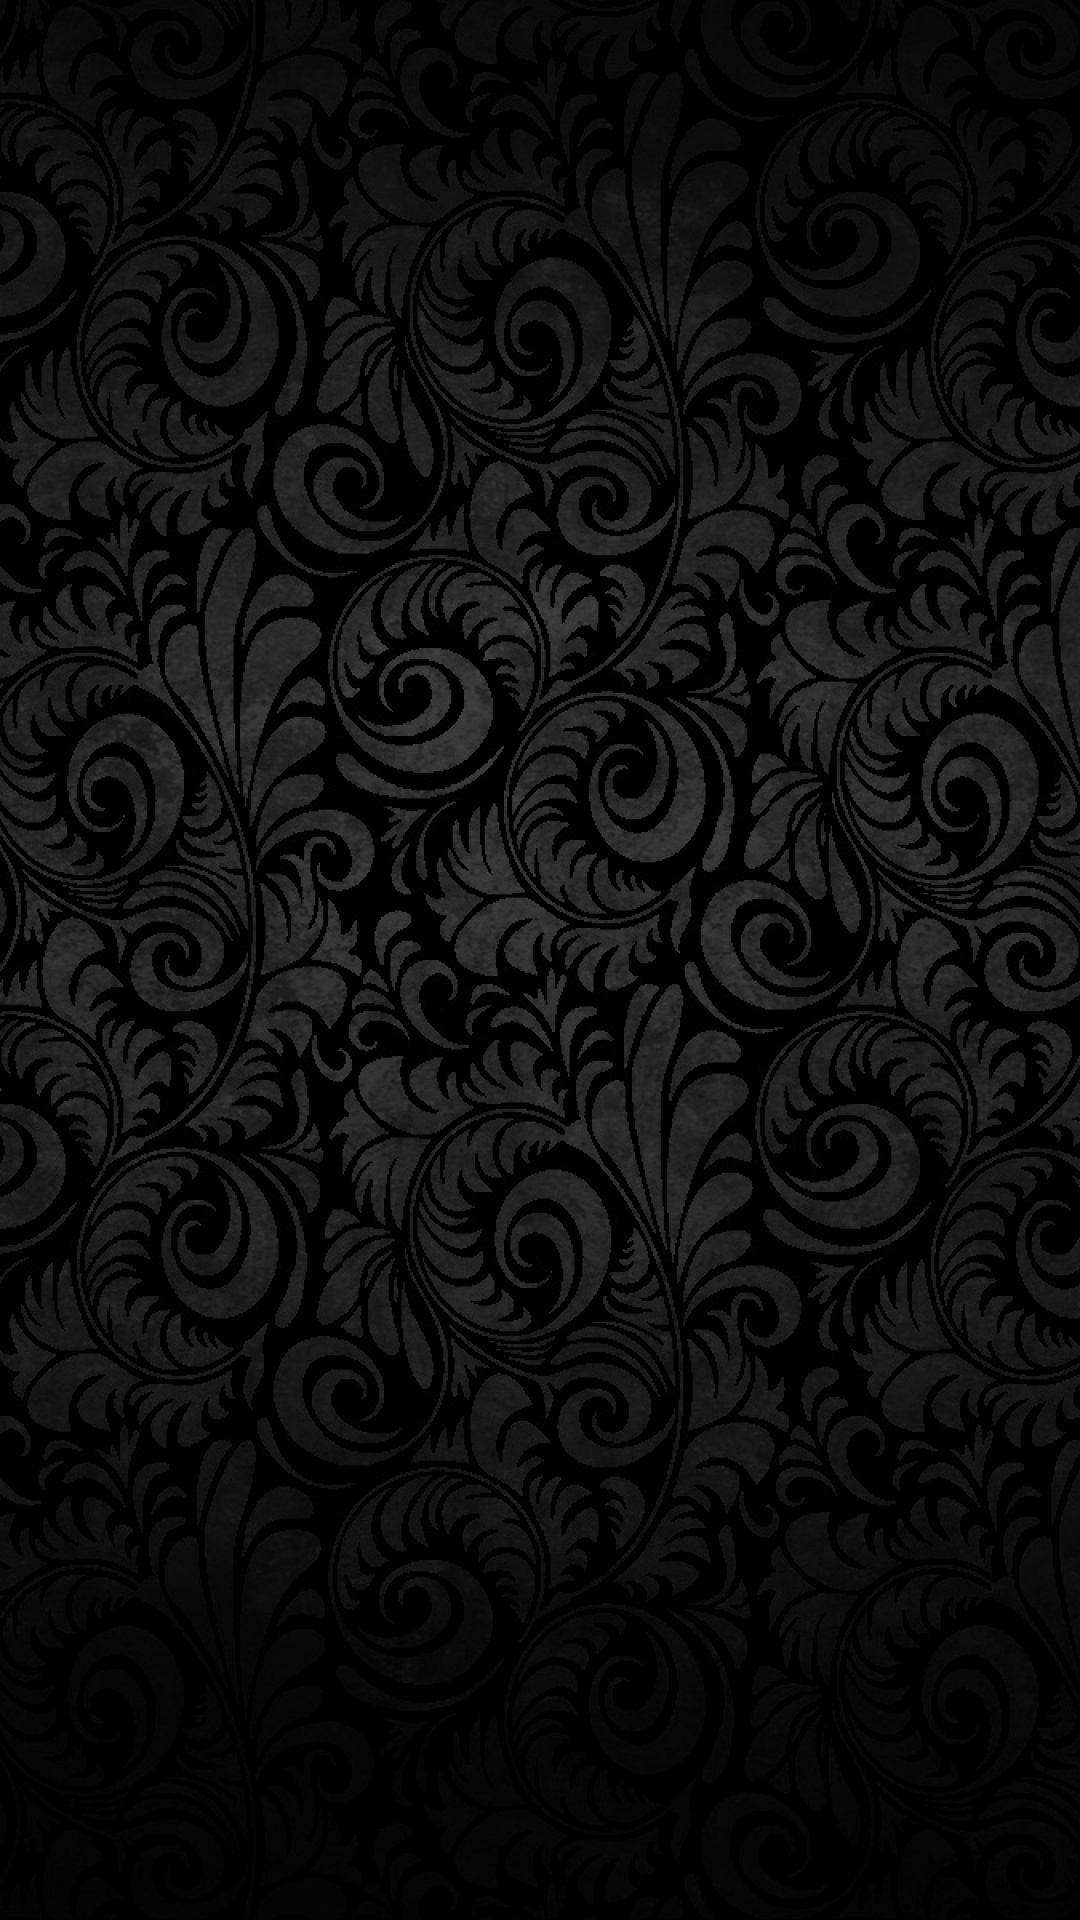 50 Black Wallpaper In Fhd For Free Download For Android Desktop And Laptops